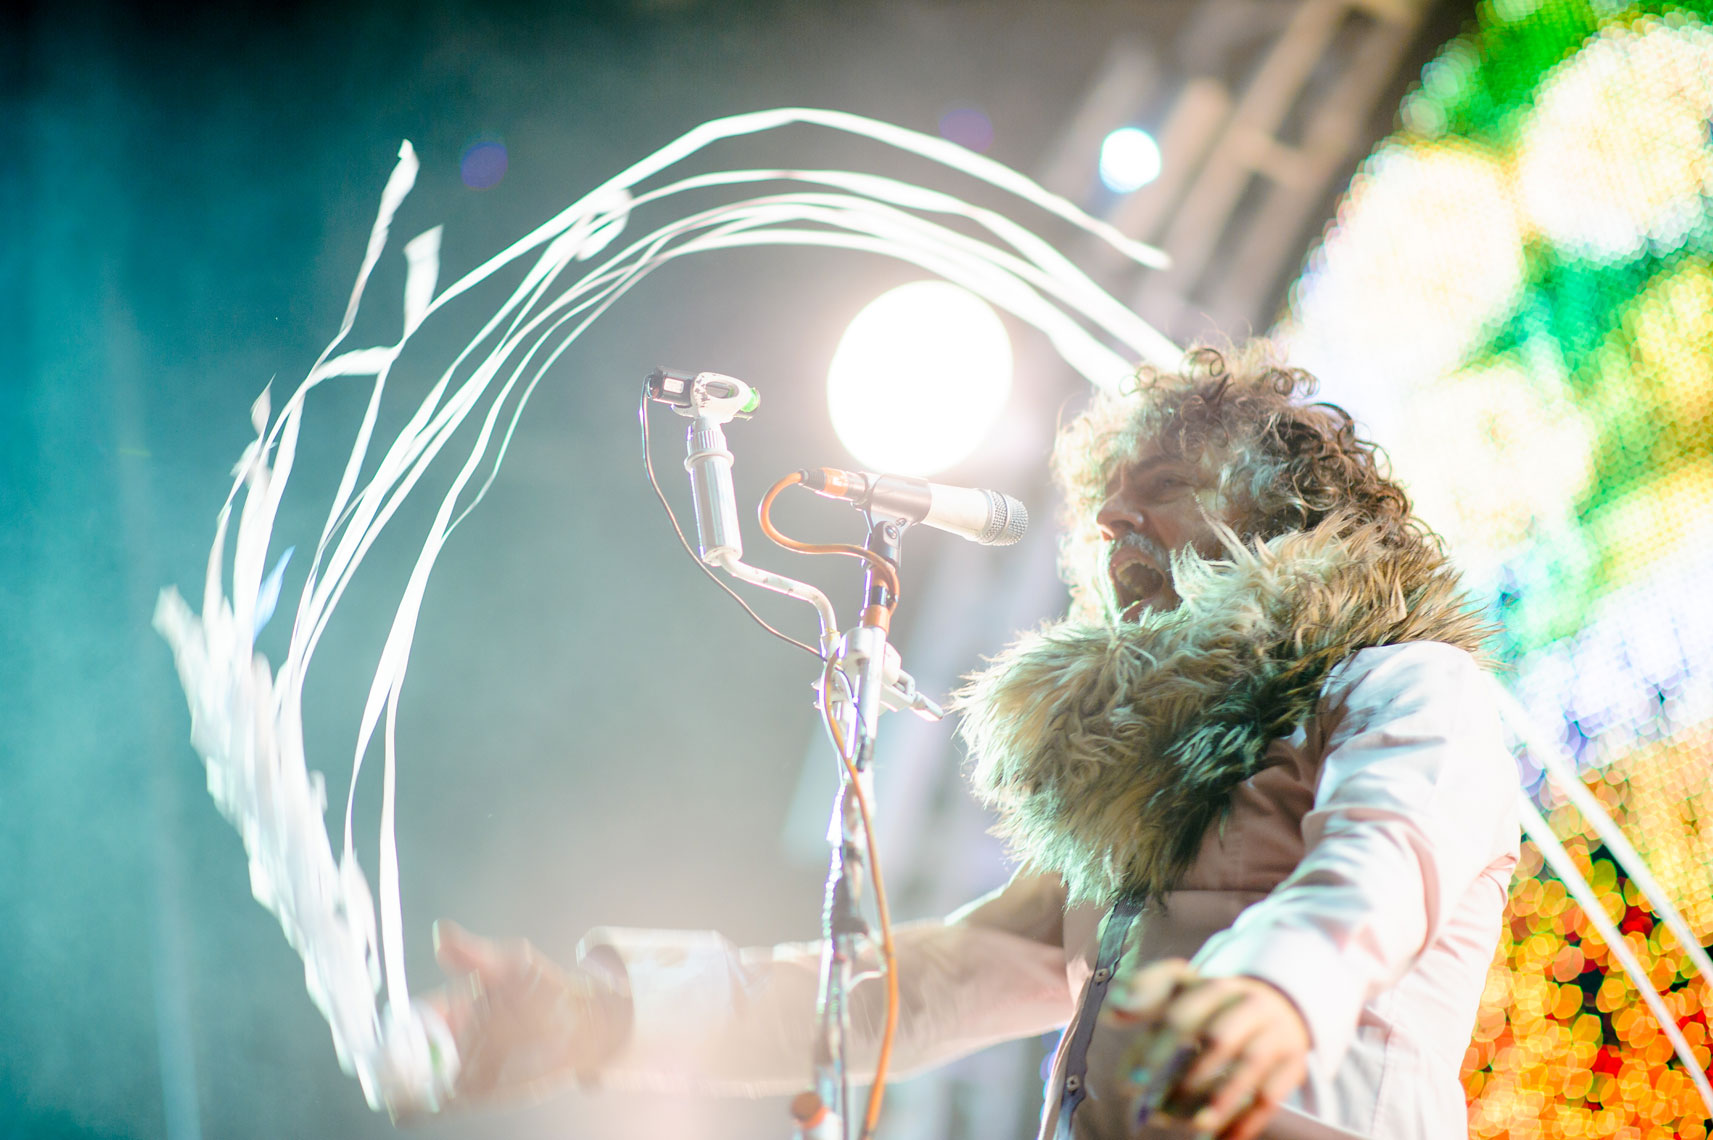 The-Flaming-Lips-play-the-Animoog-Playground-at-Moogfest-on-Saturday,-October-29,-2011-15